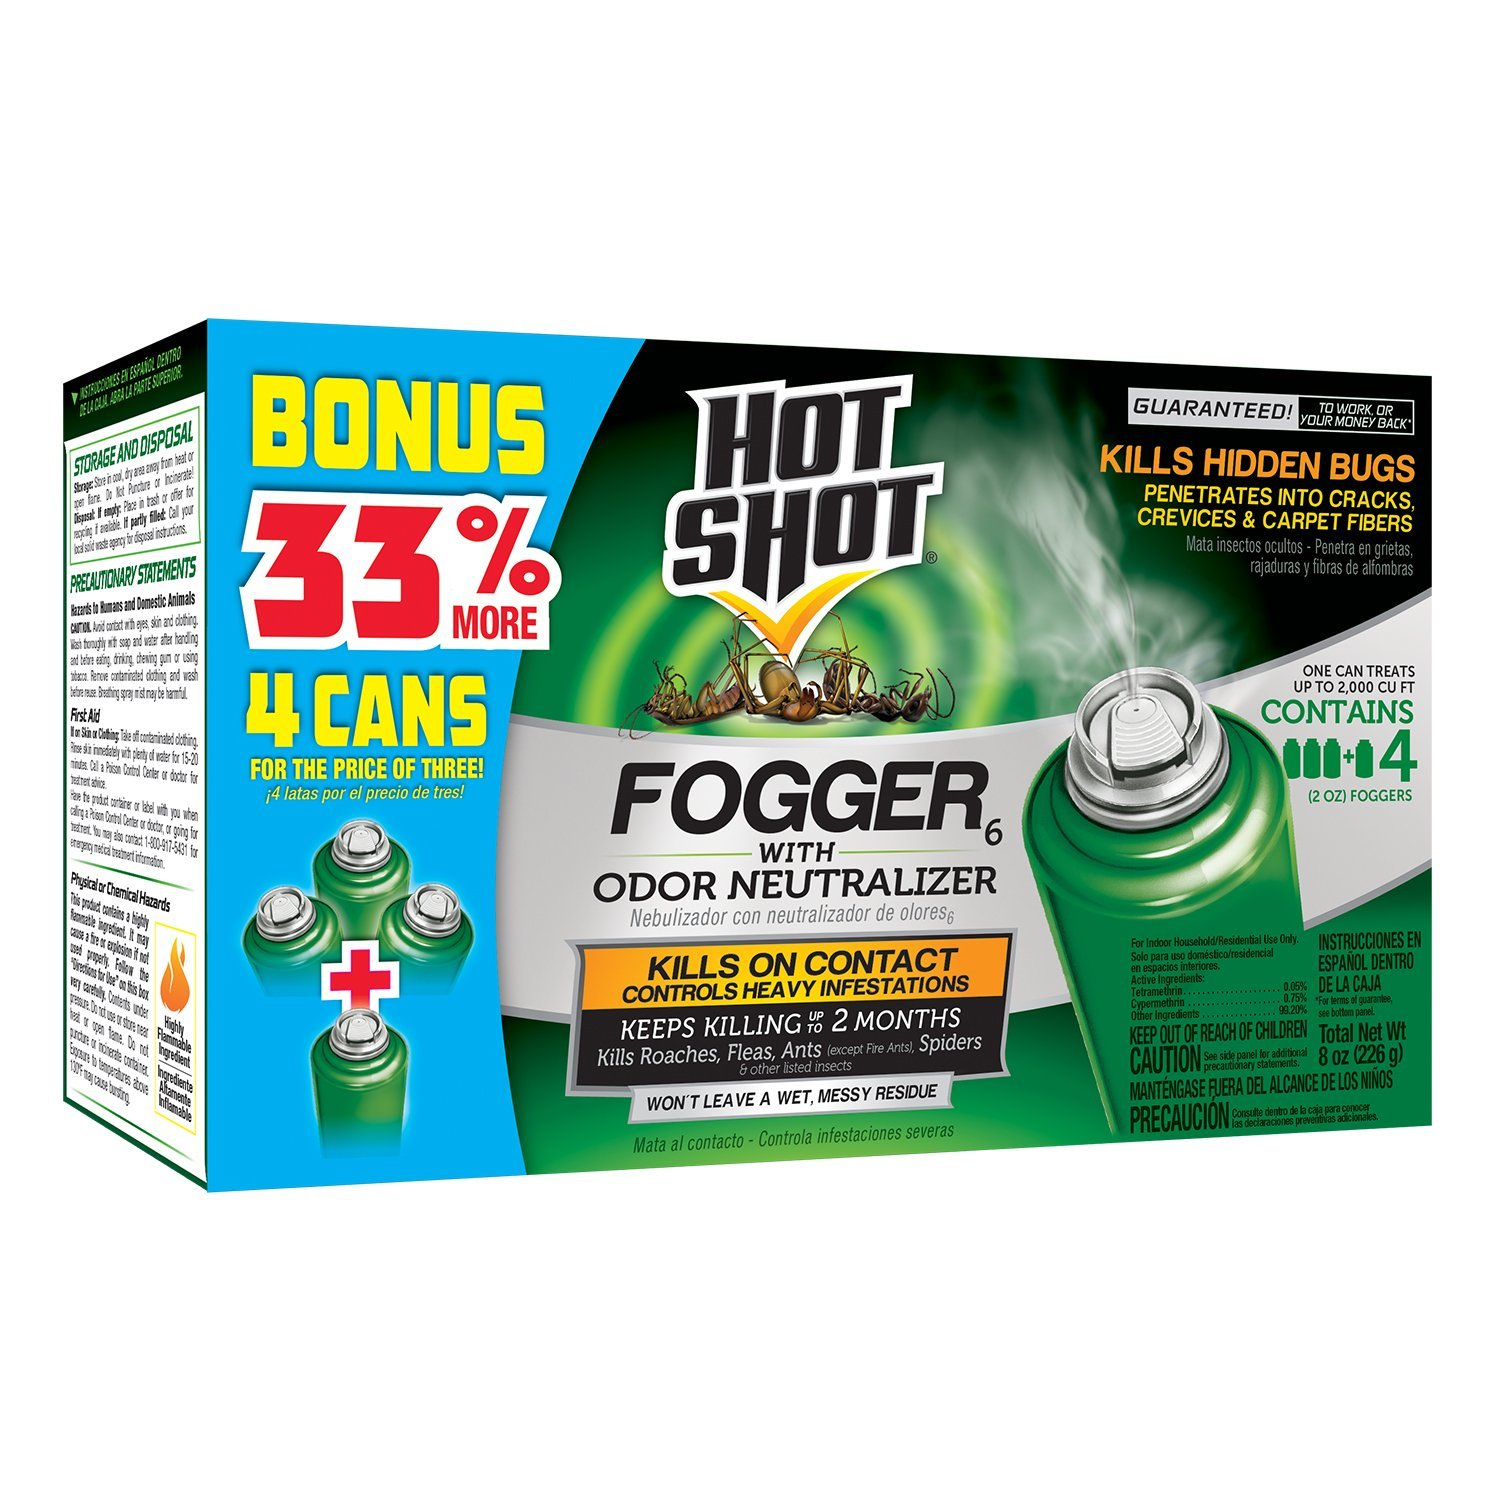 Hot Shot IUffHDUH 96181 Indoor Pest Control Fogger, 4-Count Bonus Size, 2 Pack by Hot Shot (Image #2)